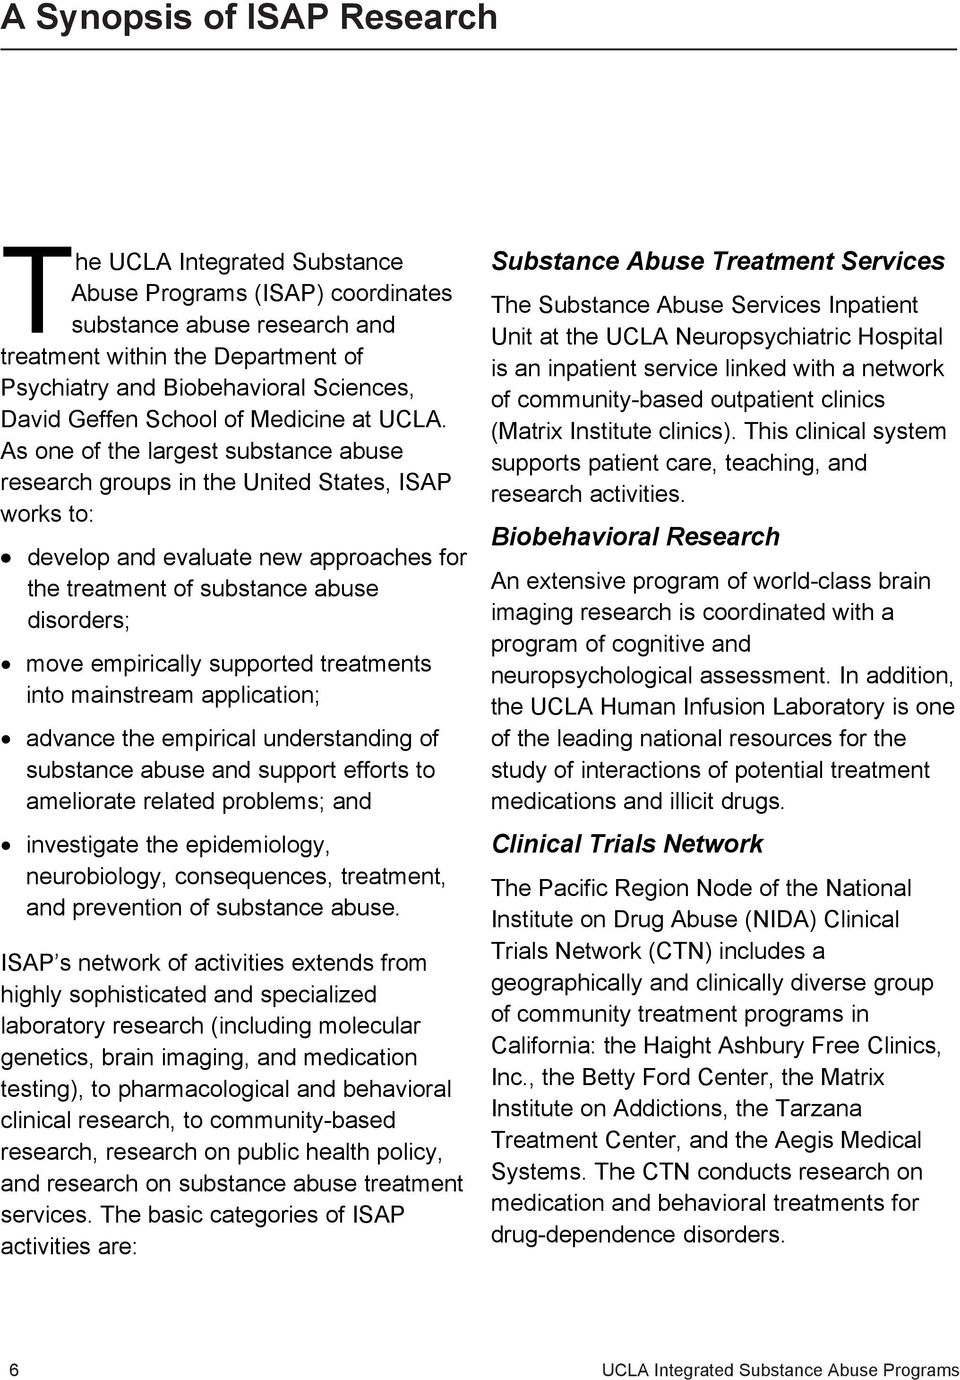 As one of the largest substance abuse research groups in the United States, ISAP works to: develop and evaluate new approaches for the treatment of substance abuse disorders; move empirically